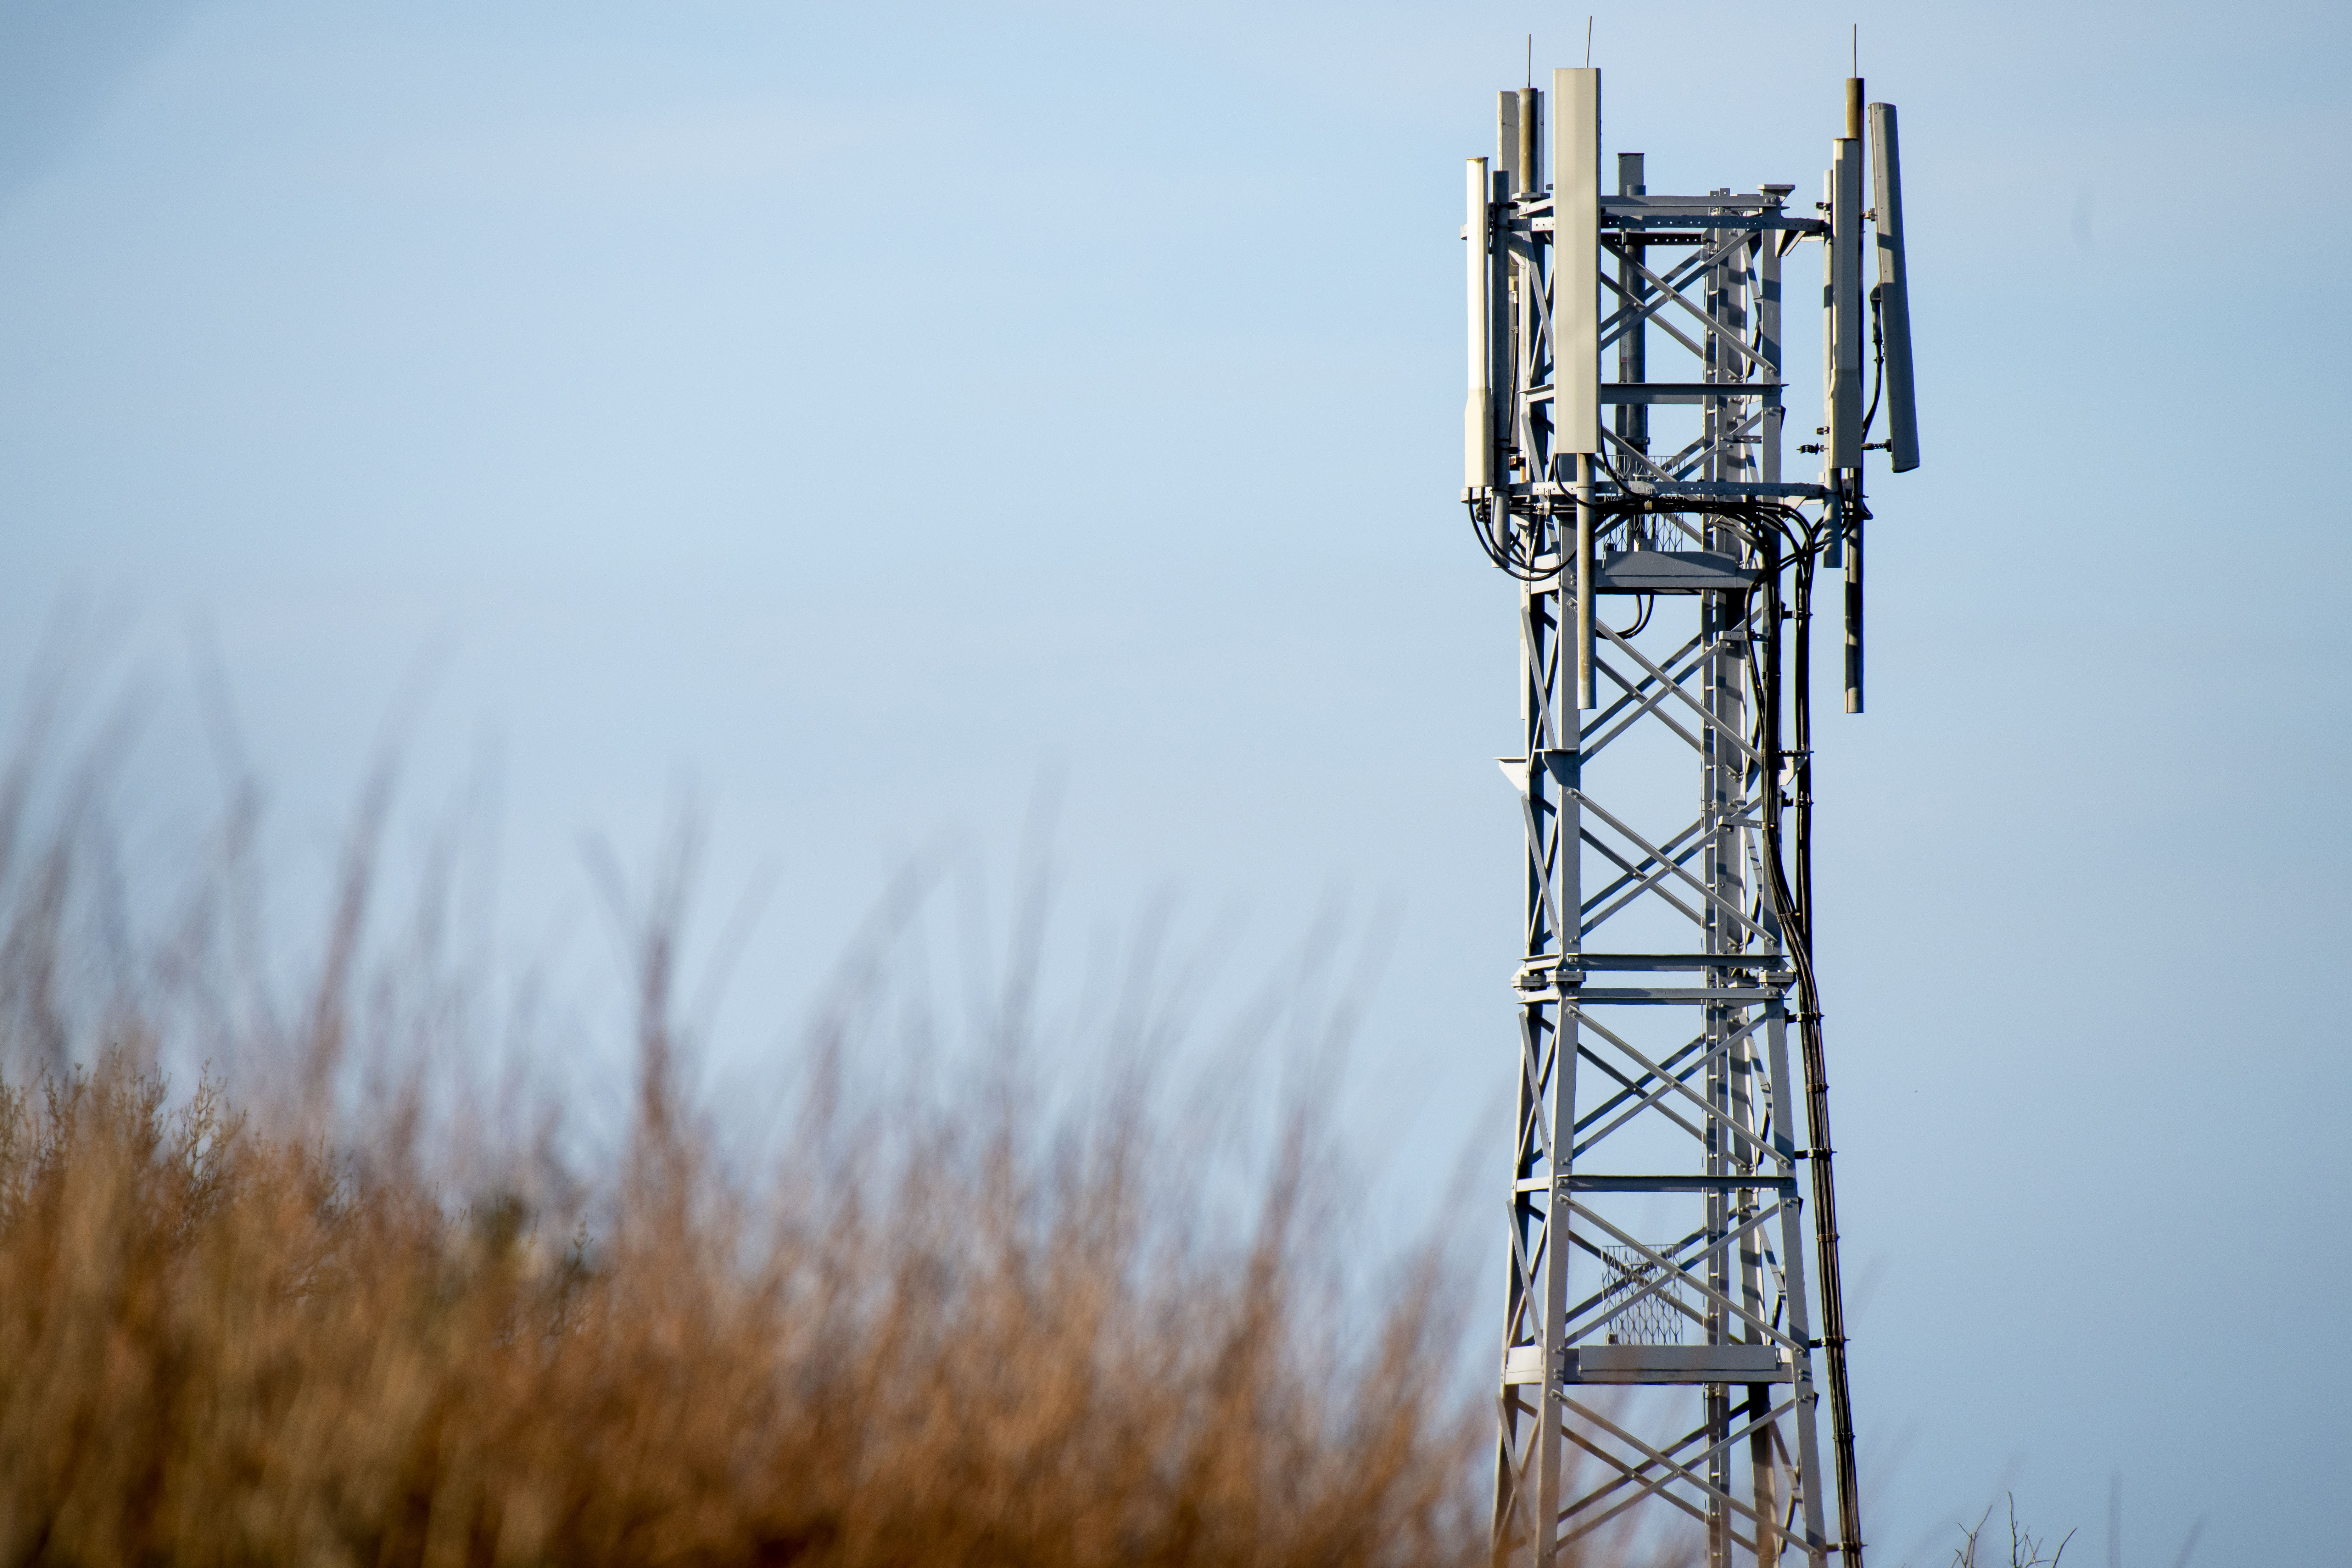 UK cell towers torched after bizarre conspiracy theory links 5G to coronavirus pandemic - fox